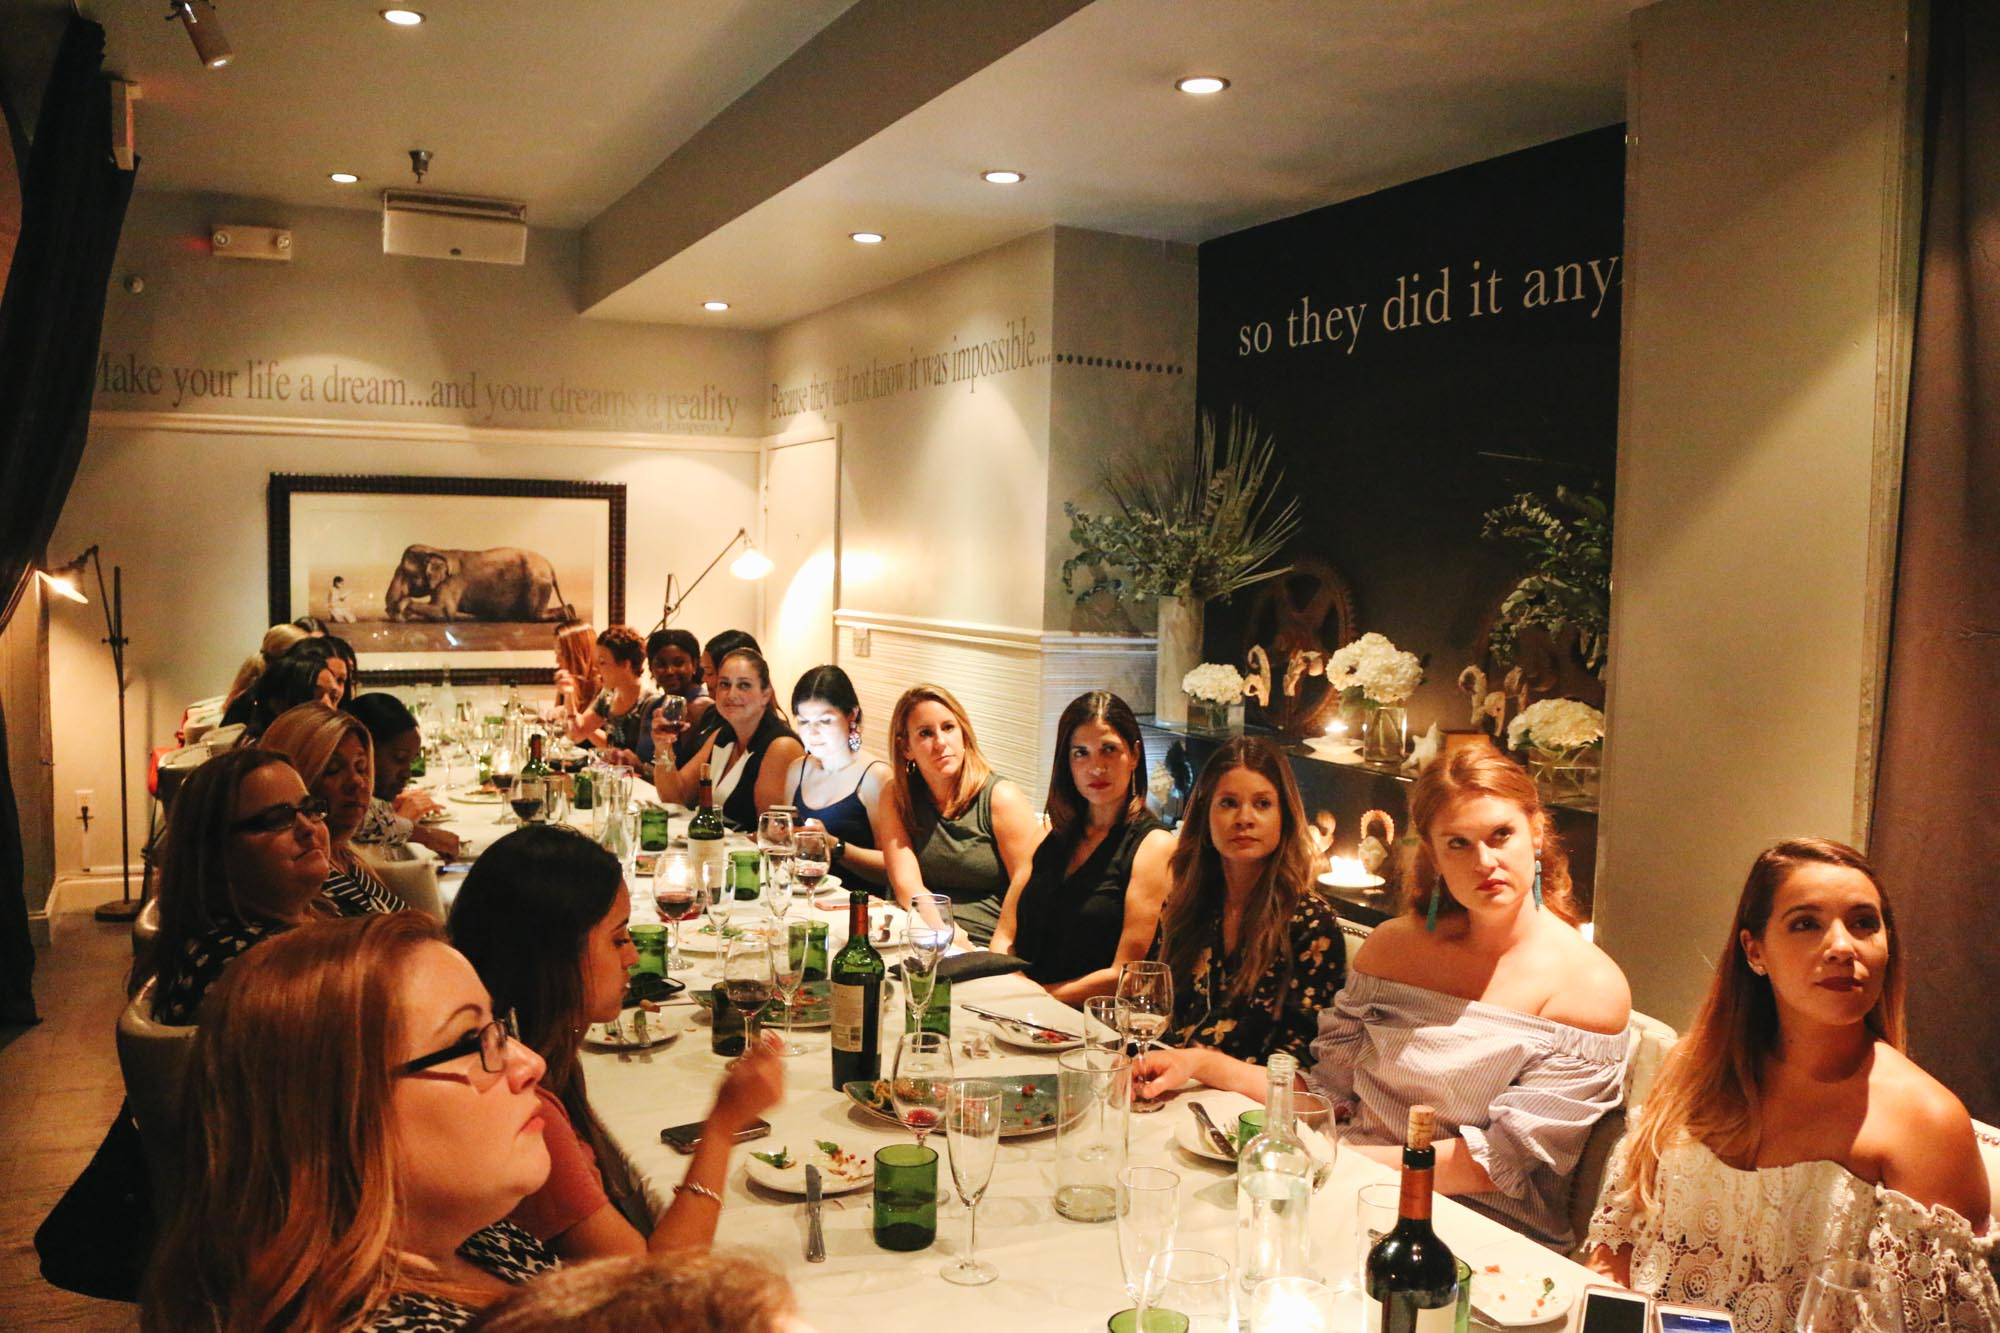 Women Who Wine Uncorked Conversations-Dolores Lolita-Miami Wine Events-Wine Tasting Miami-22.jpg